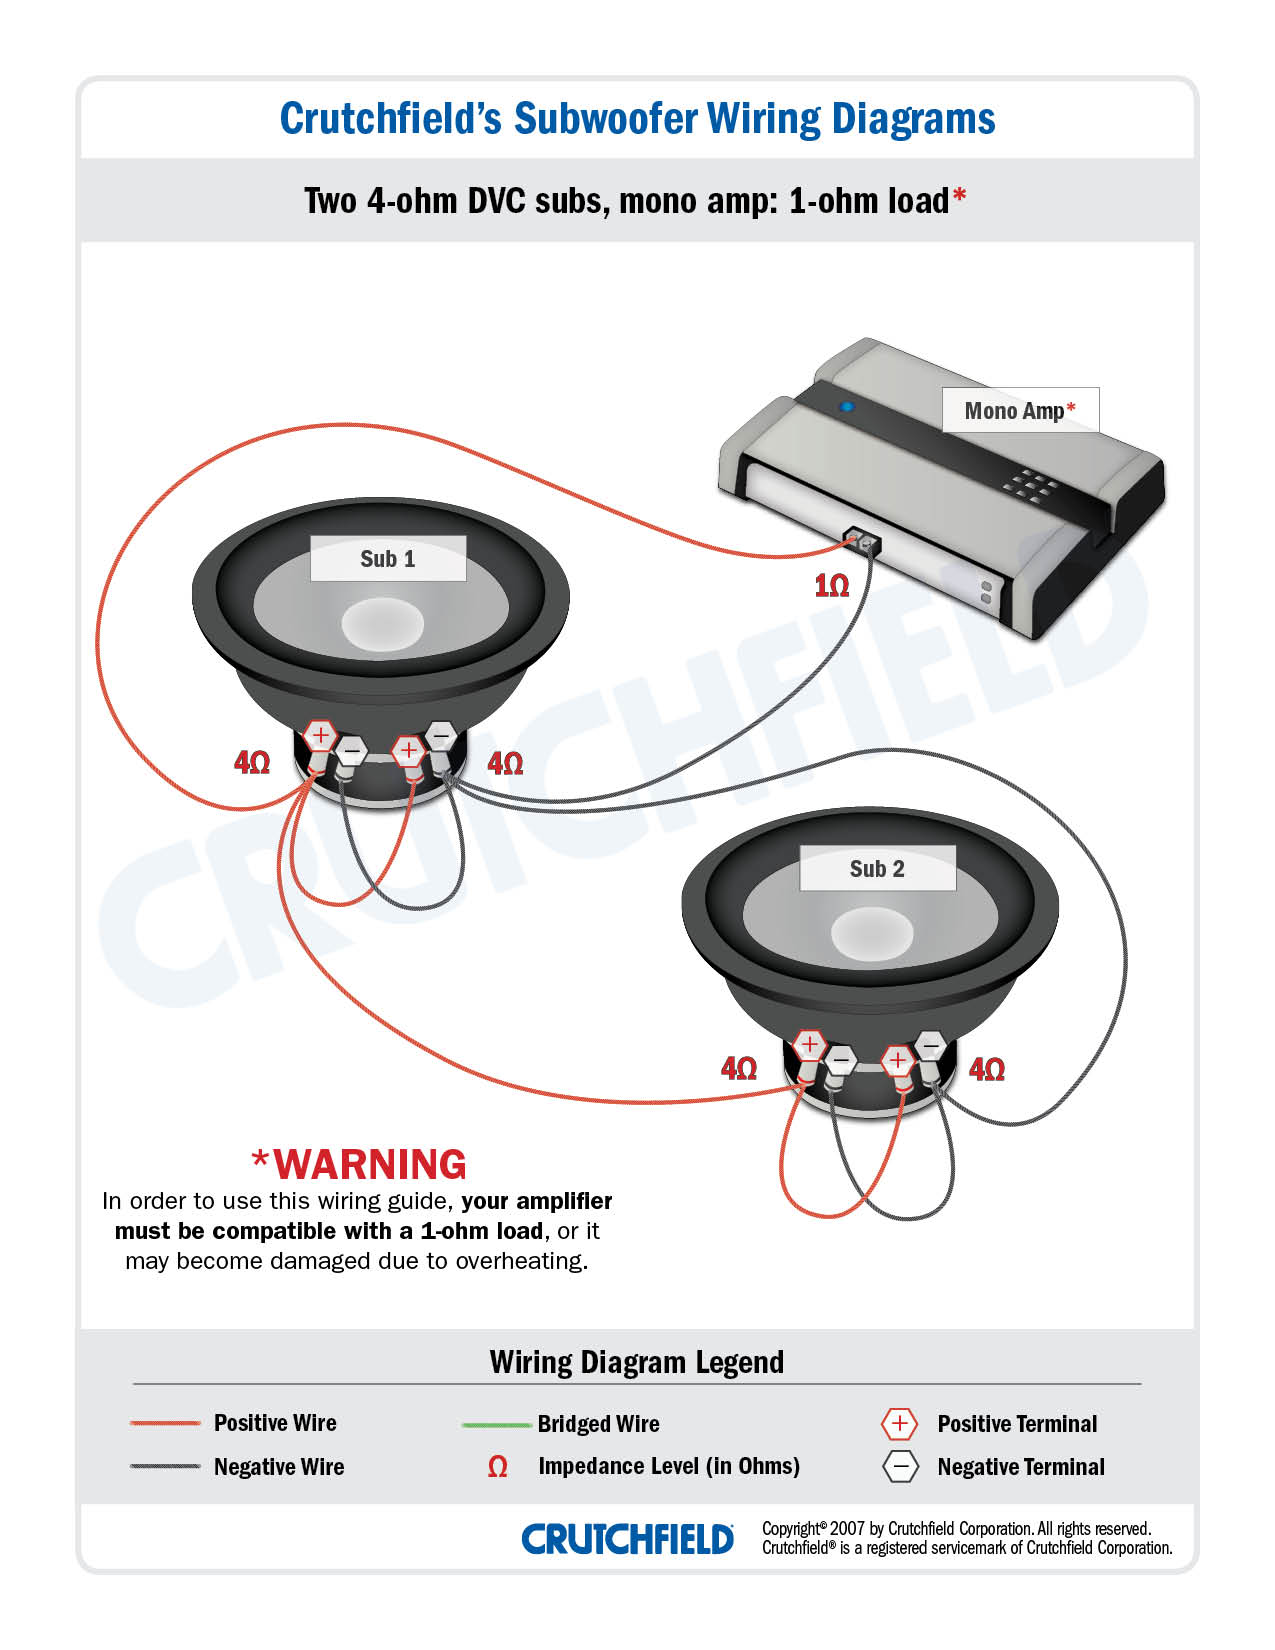 subwoofer wiring diagrams how to wire your subs 3 sub wiring-diagram that amplifier isn't stable for a 1 ohm load, so that's probably what you're hearing the amp freaking out even wiring the subs to form a